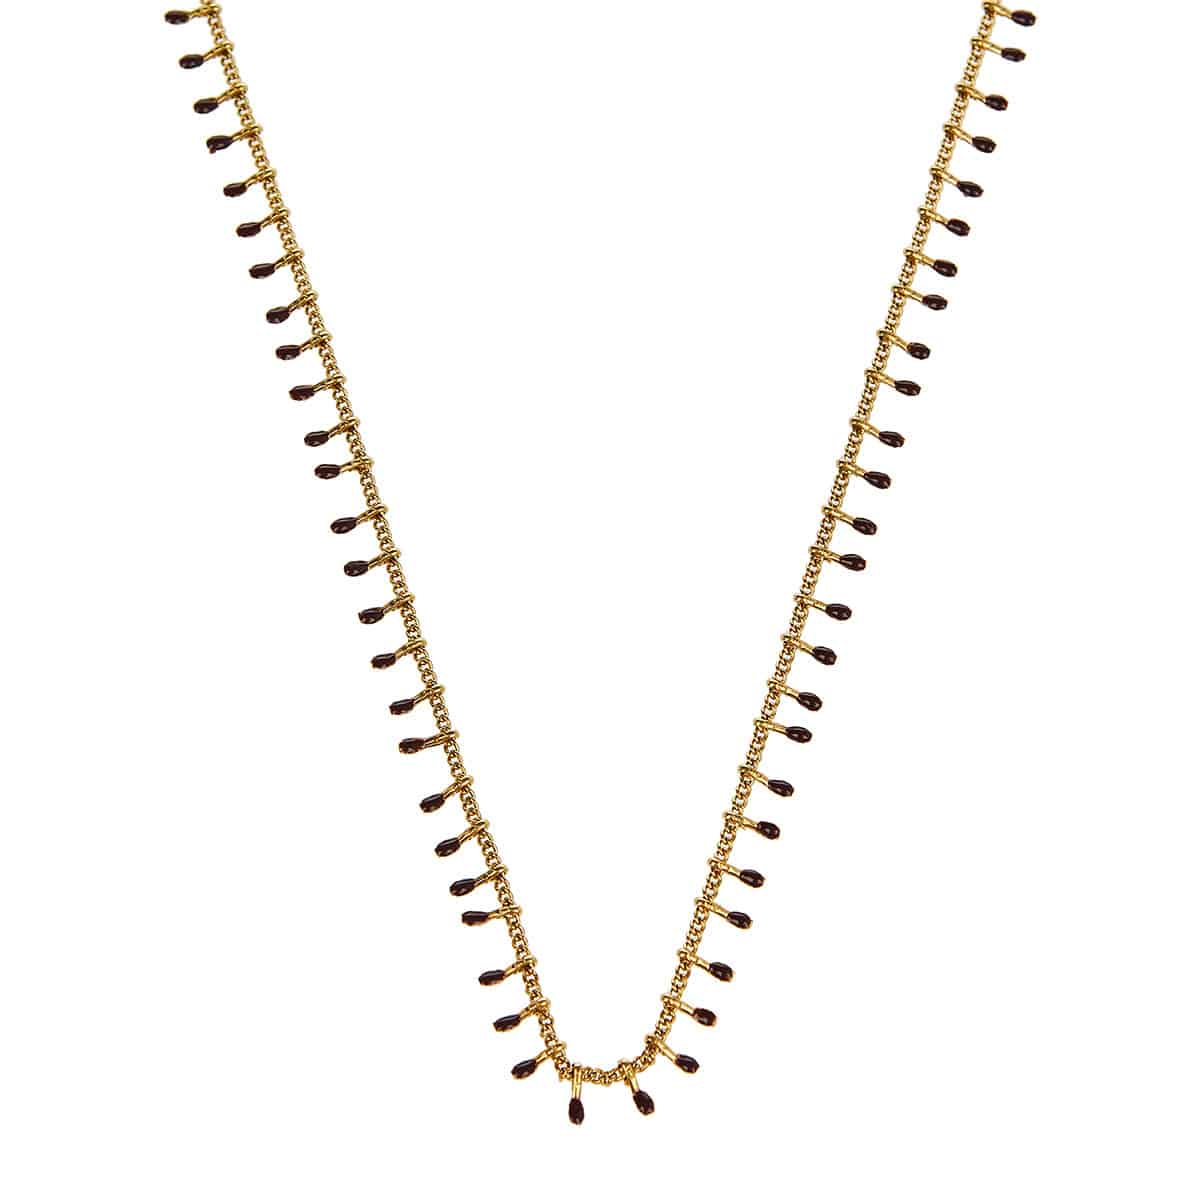 Casablanca enameled chain necklace